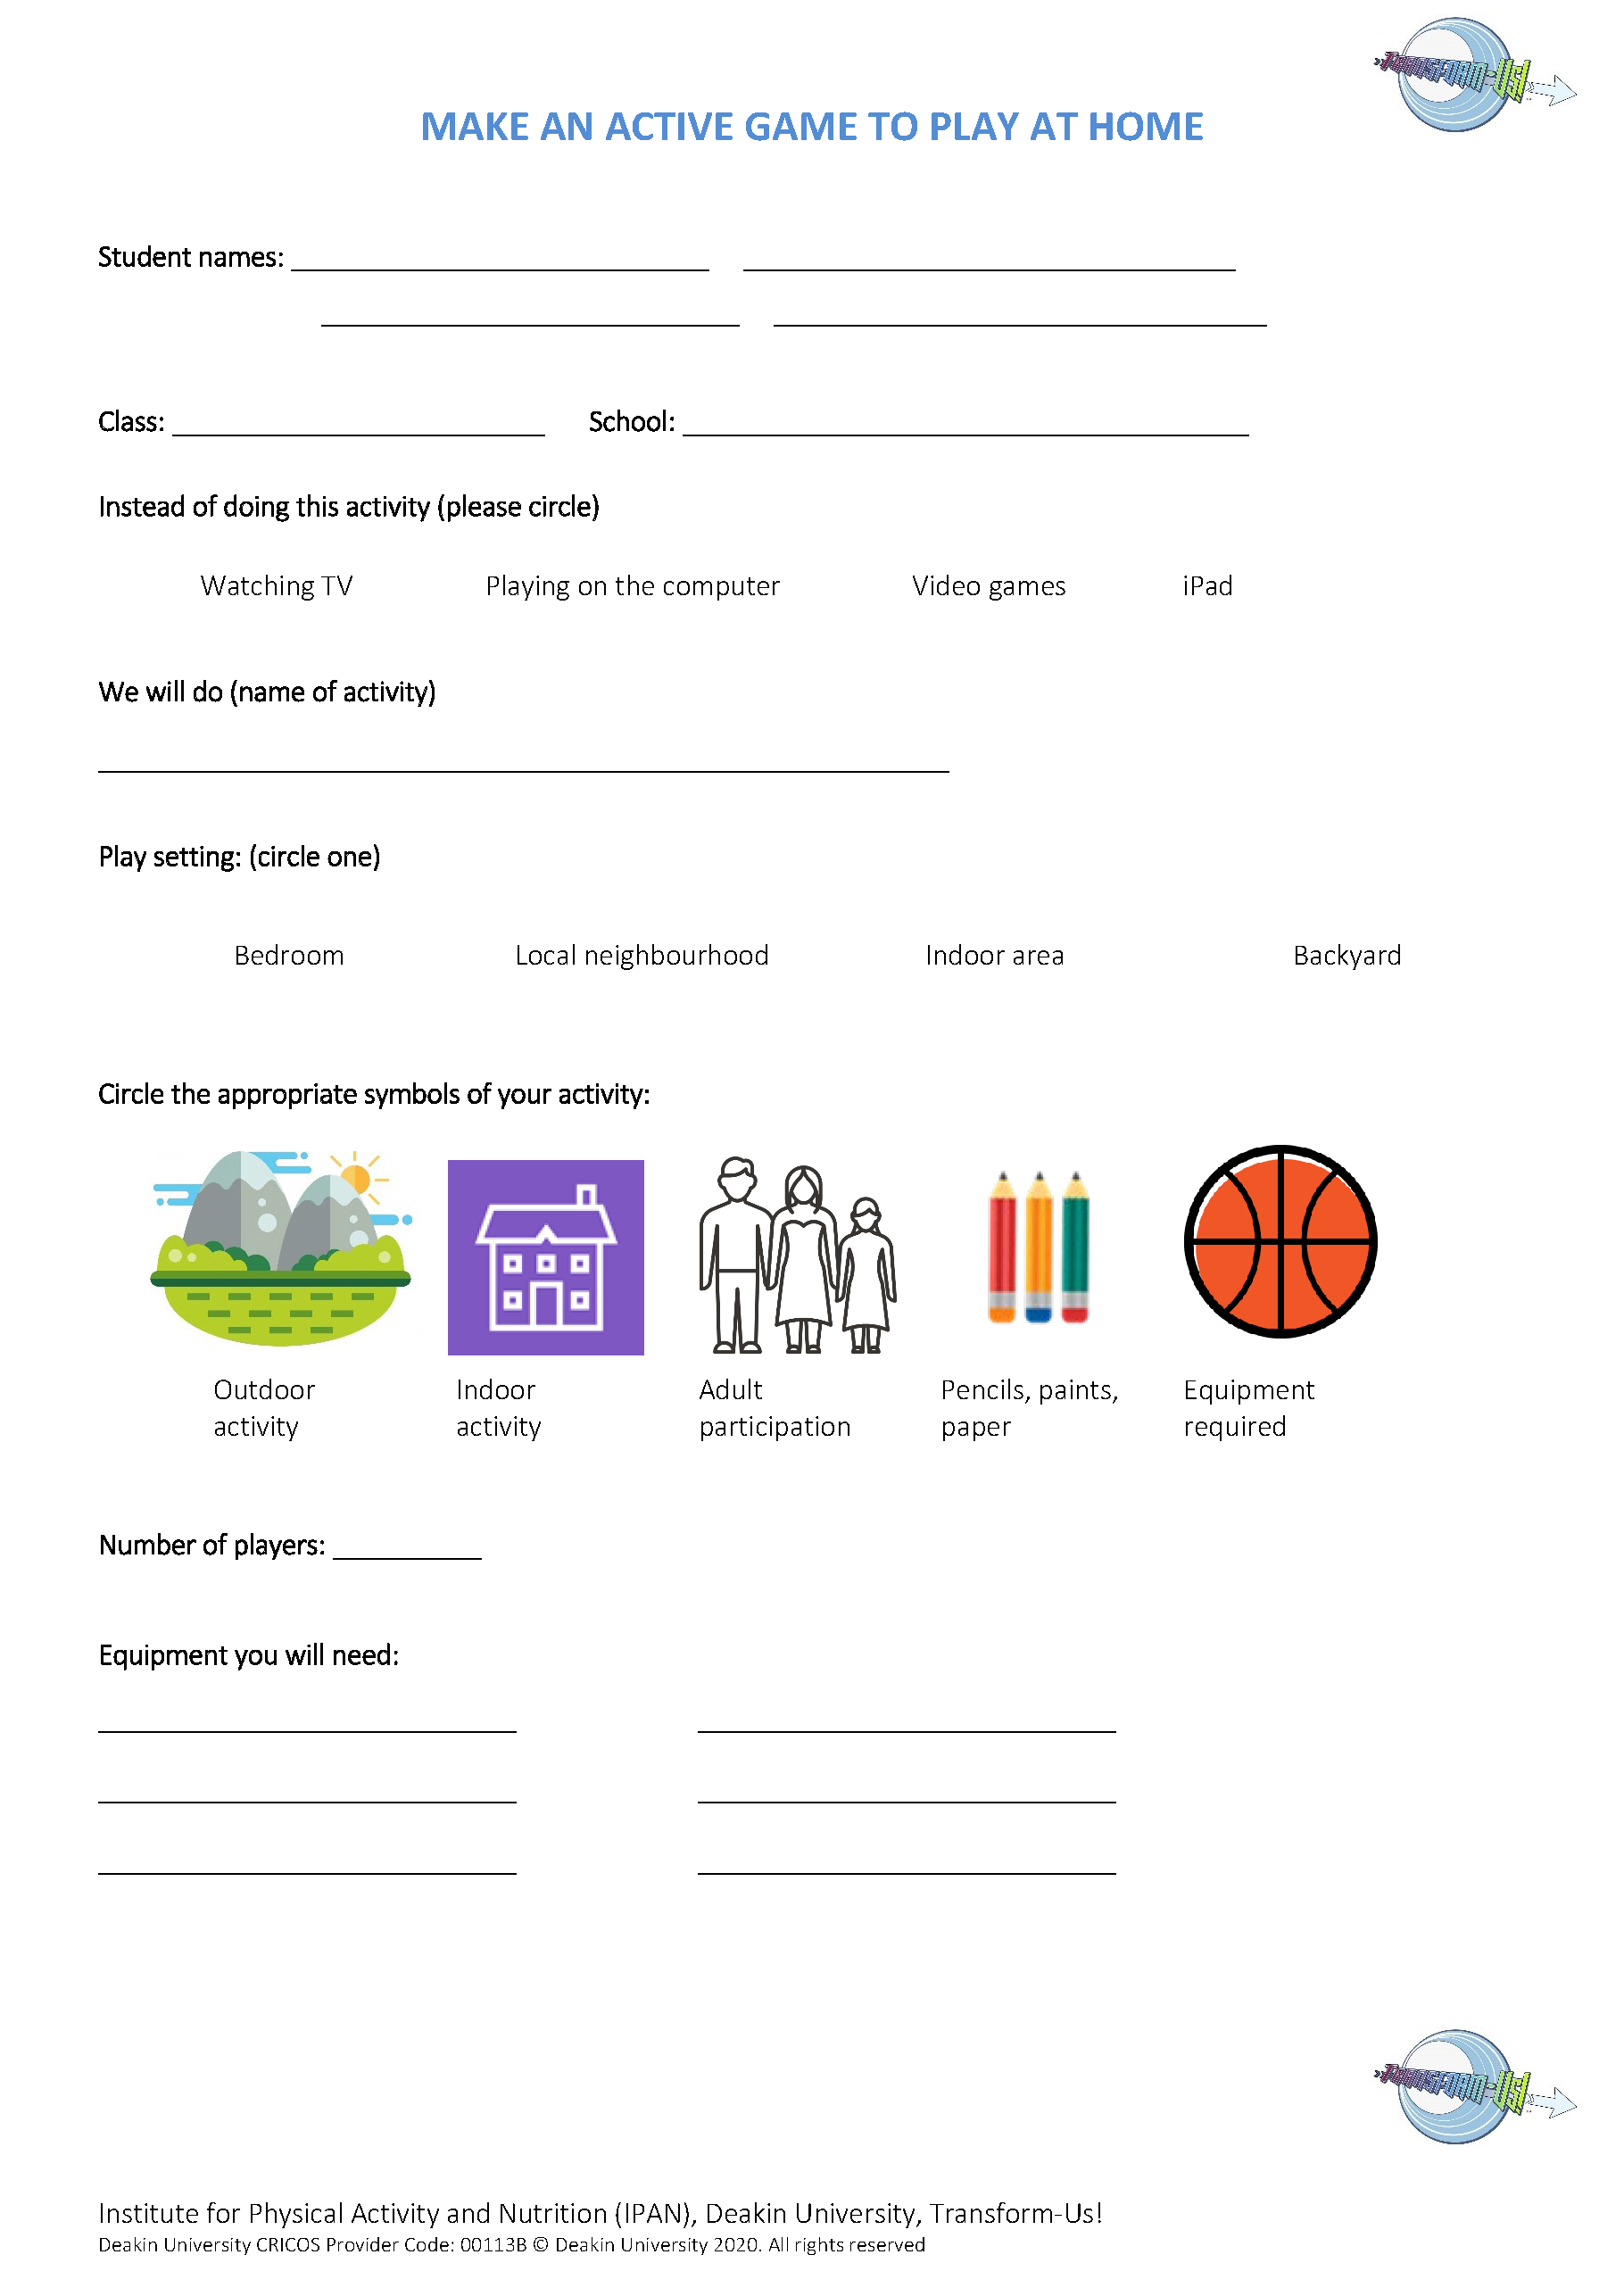 Topic 4 Make an active game to play at home worksheet_CR